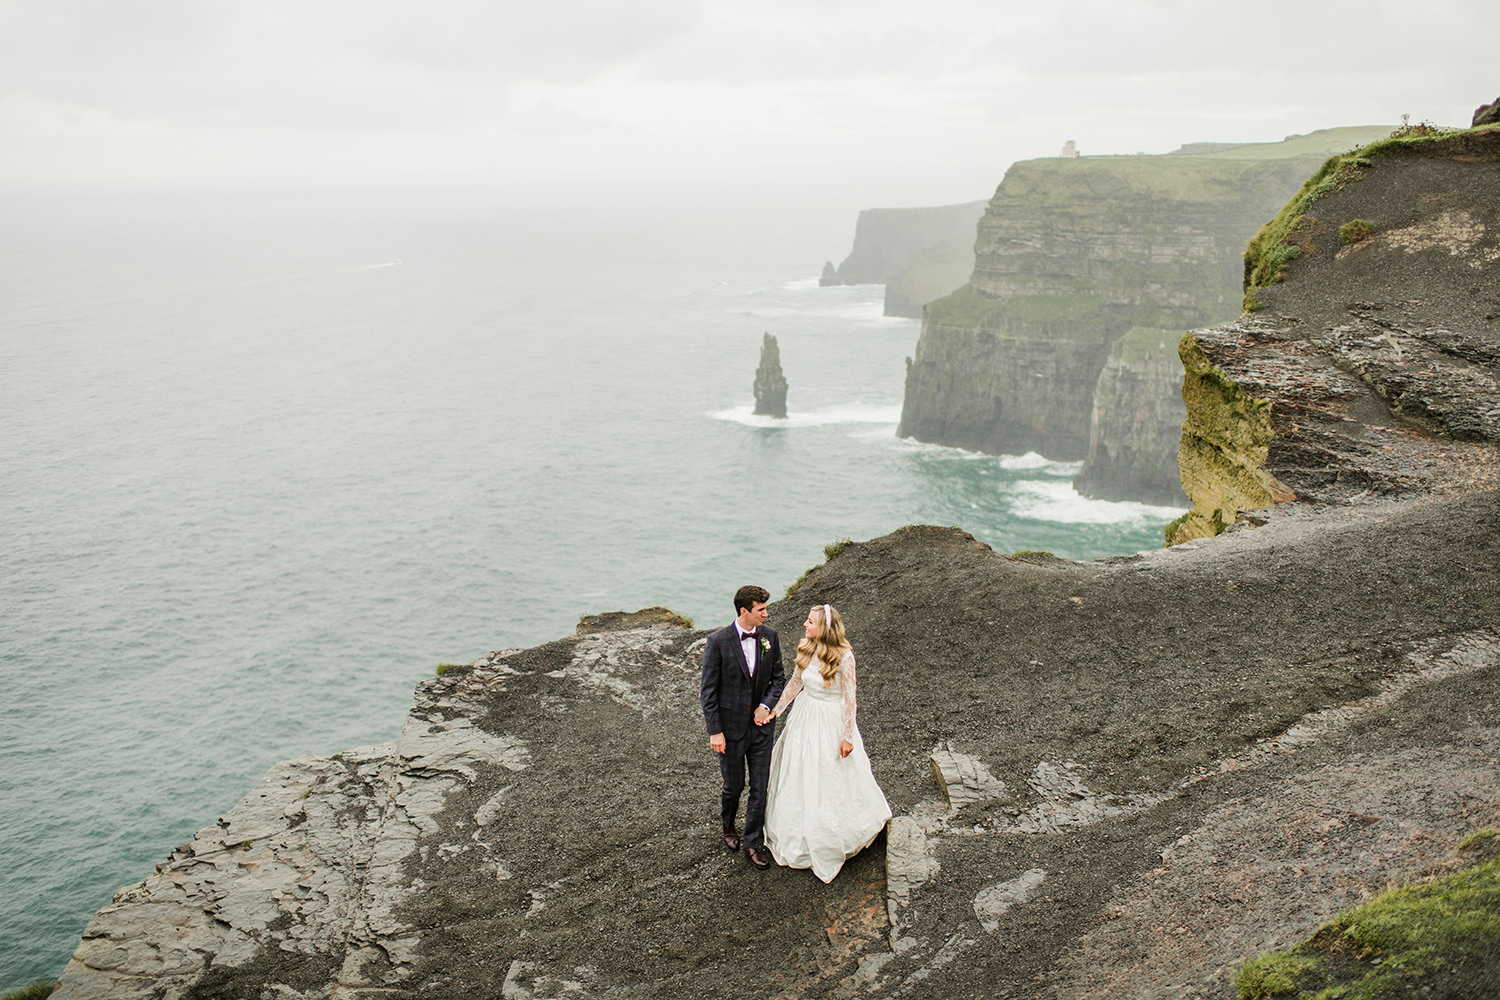 wedding picture with bride and groom and cliffs of moher and ocean in background